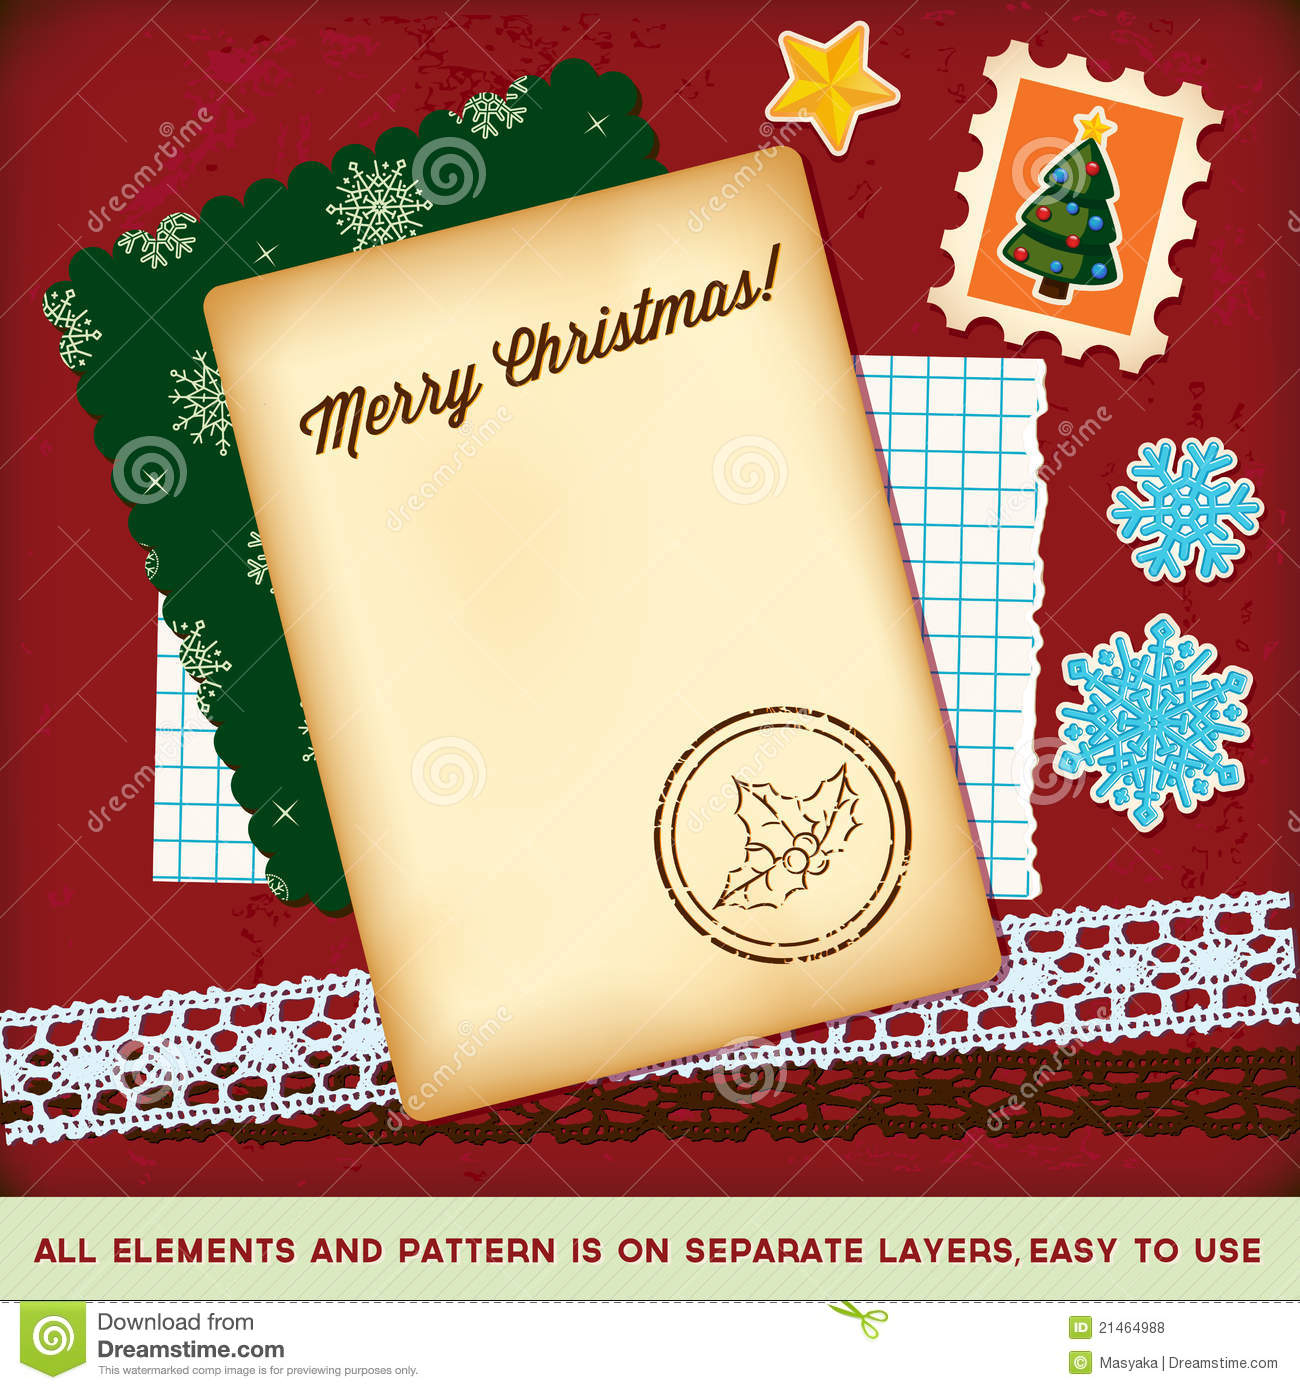 Christmas Scrapbook Elements Template Royalty Free Stock